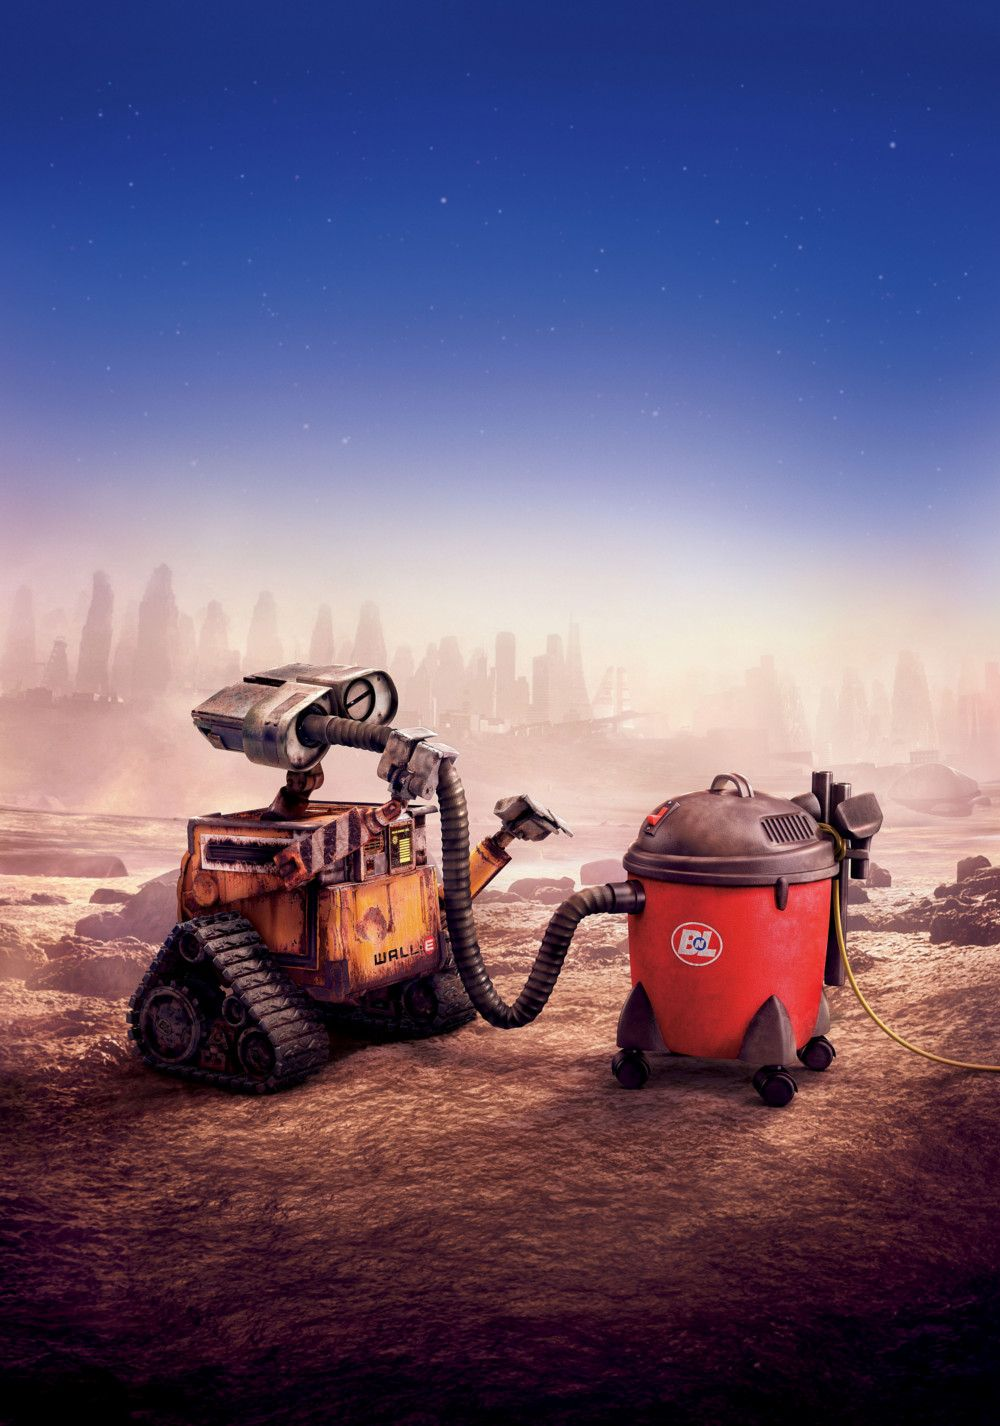 download wall e full movie